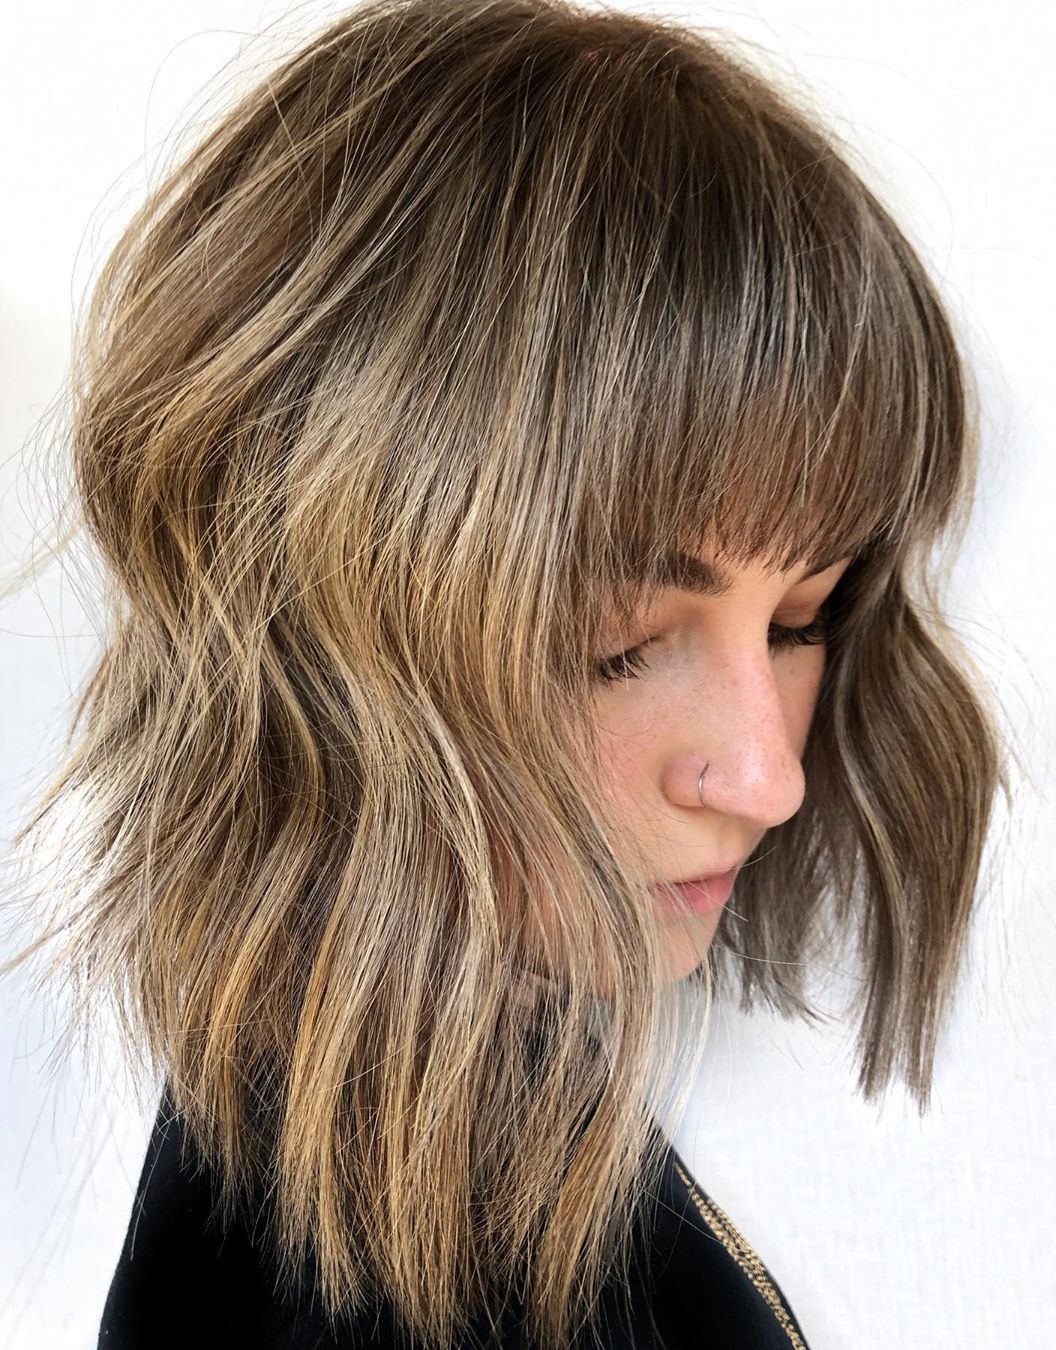 Medium Shag Haircut with Balayage Highlights